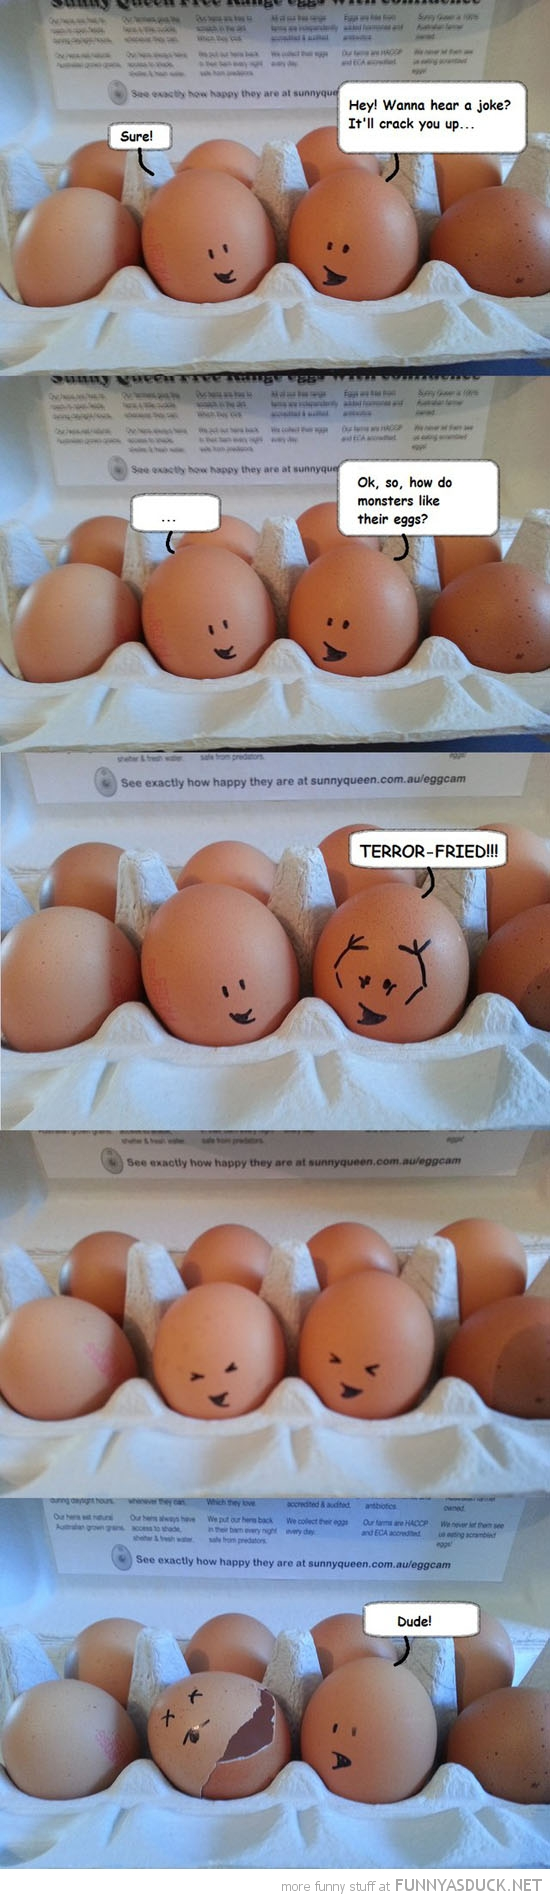 egg joke crack you up monster terror fried funny pics pictures pic picture image photo images photos lol